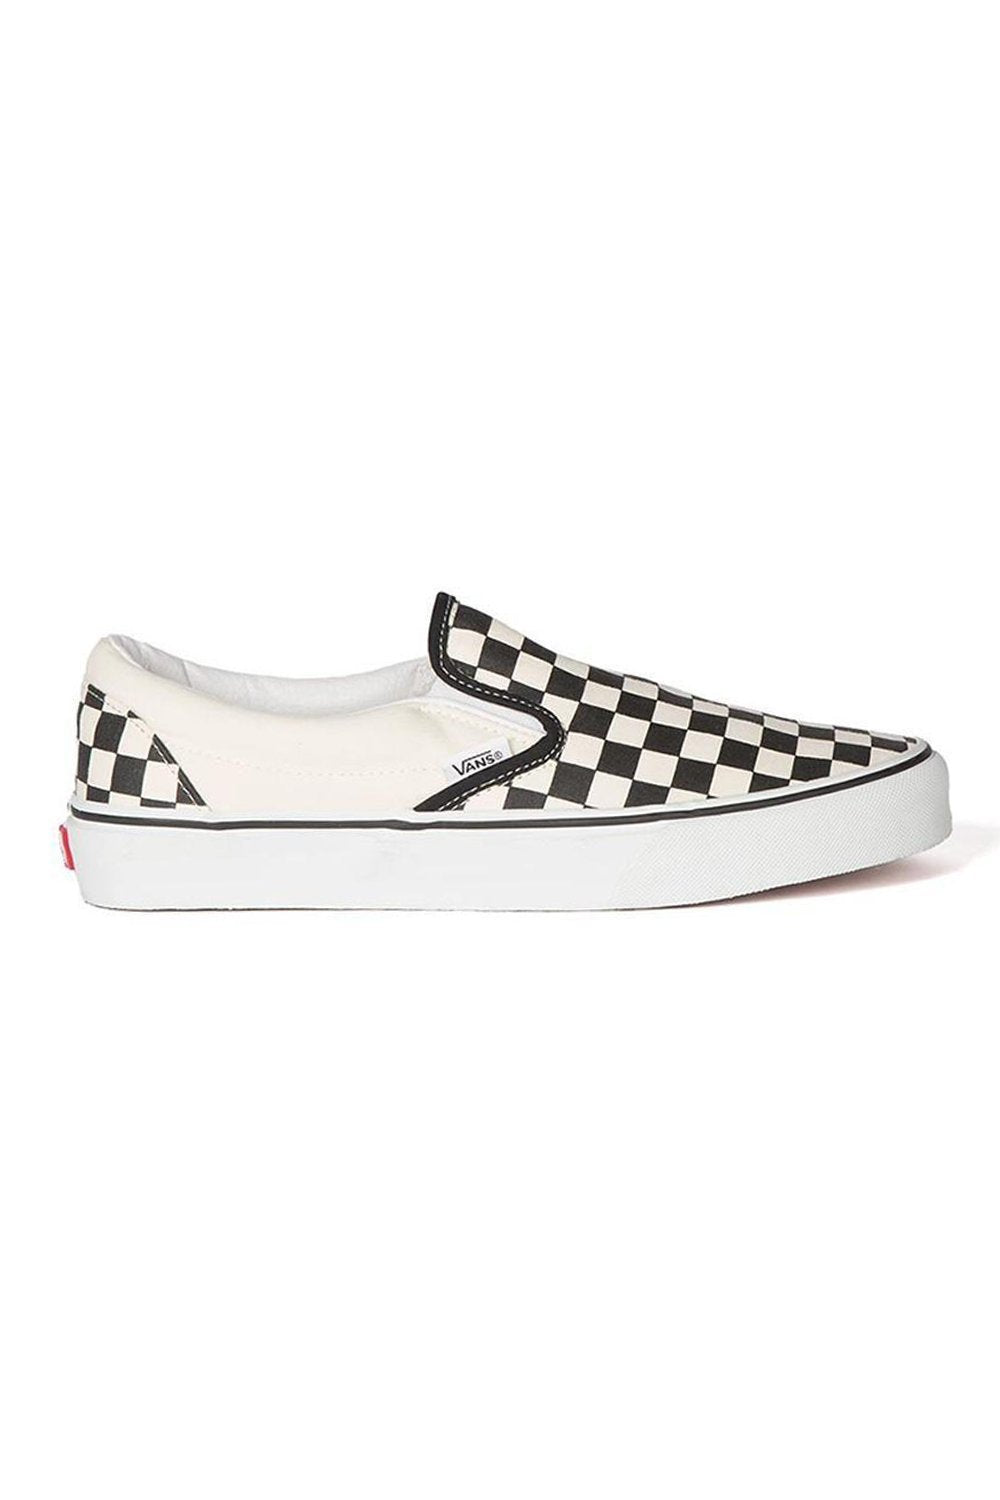 Vans Slip On Pro Shoe Checker Black/White